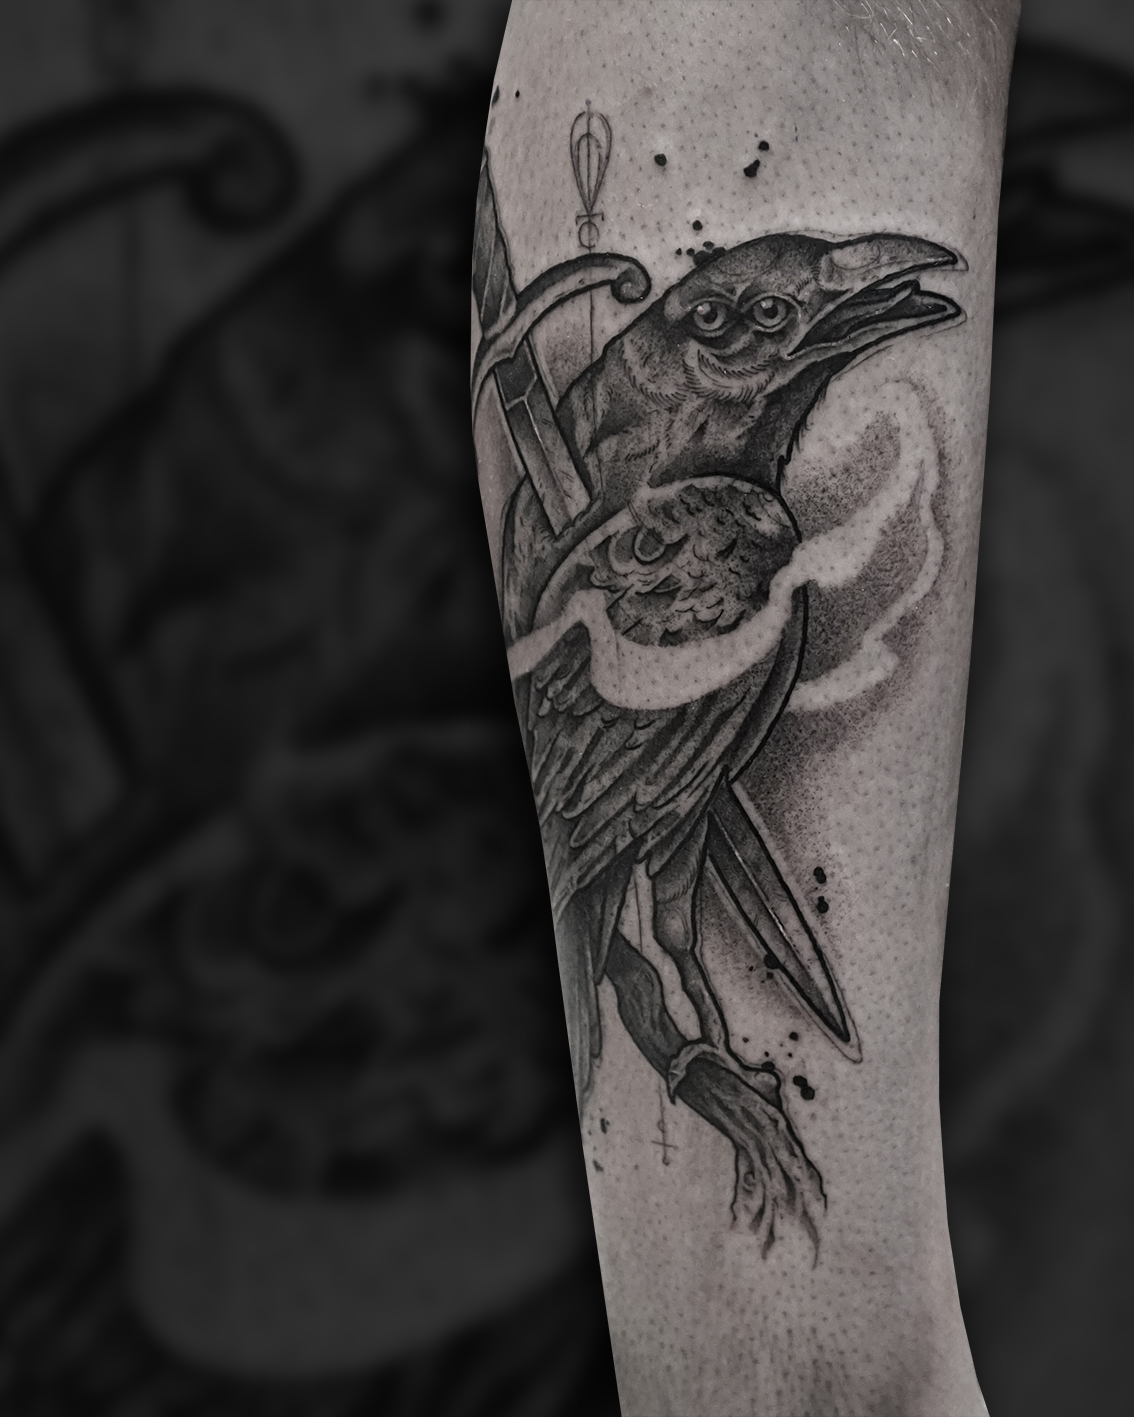 Tattoo Zincik - Crow black tattoo